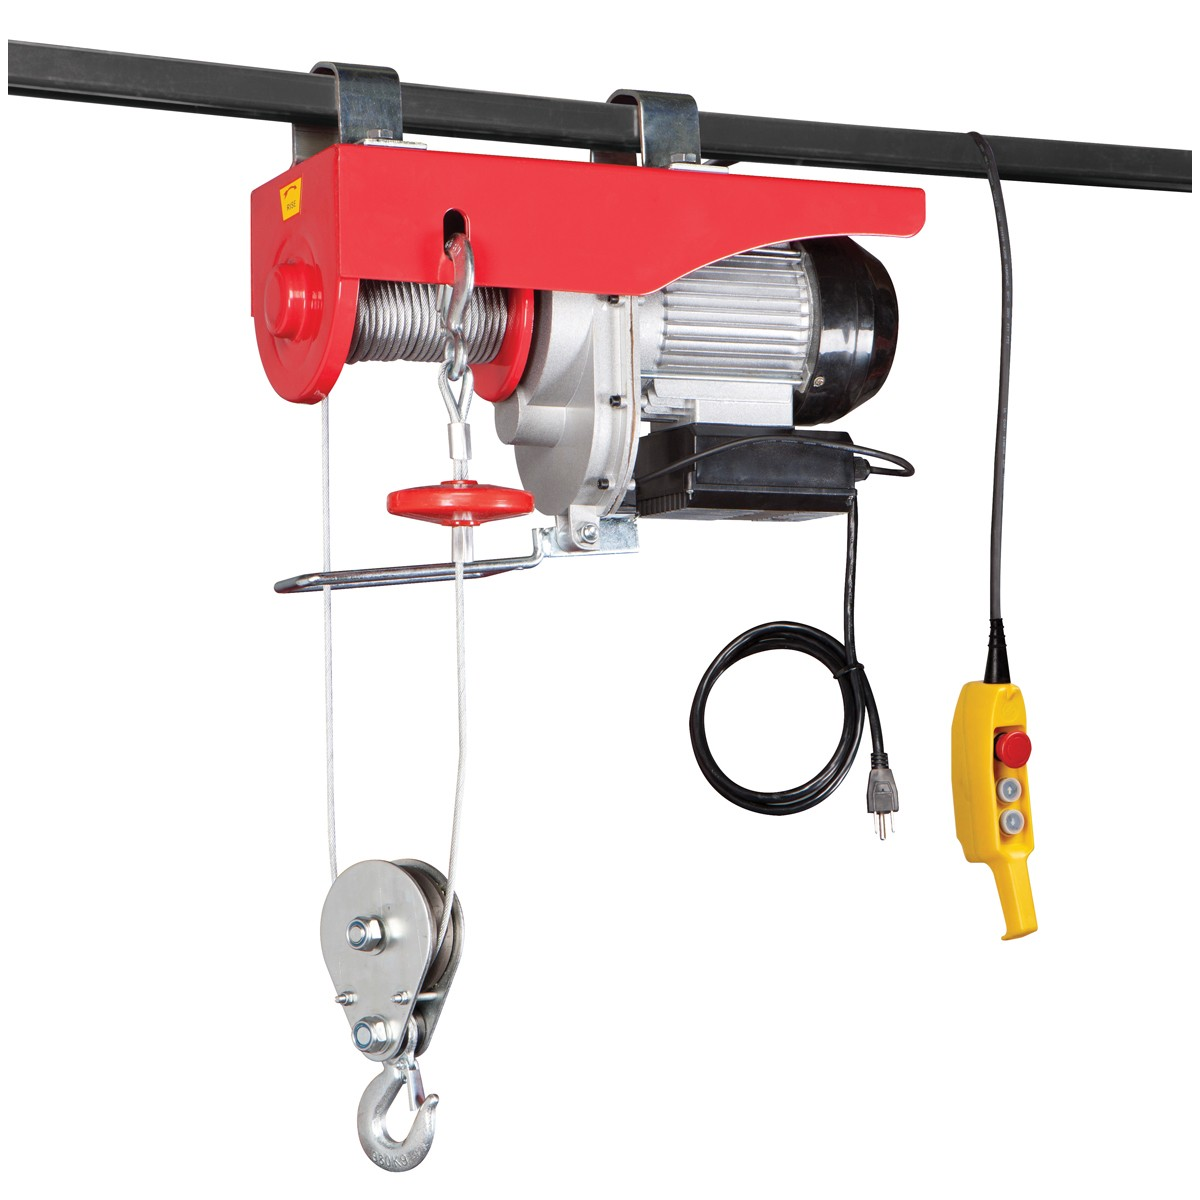 hight resolution of lifting tools pa 1000 mini electric hoist winch 1000 kg